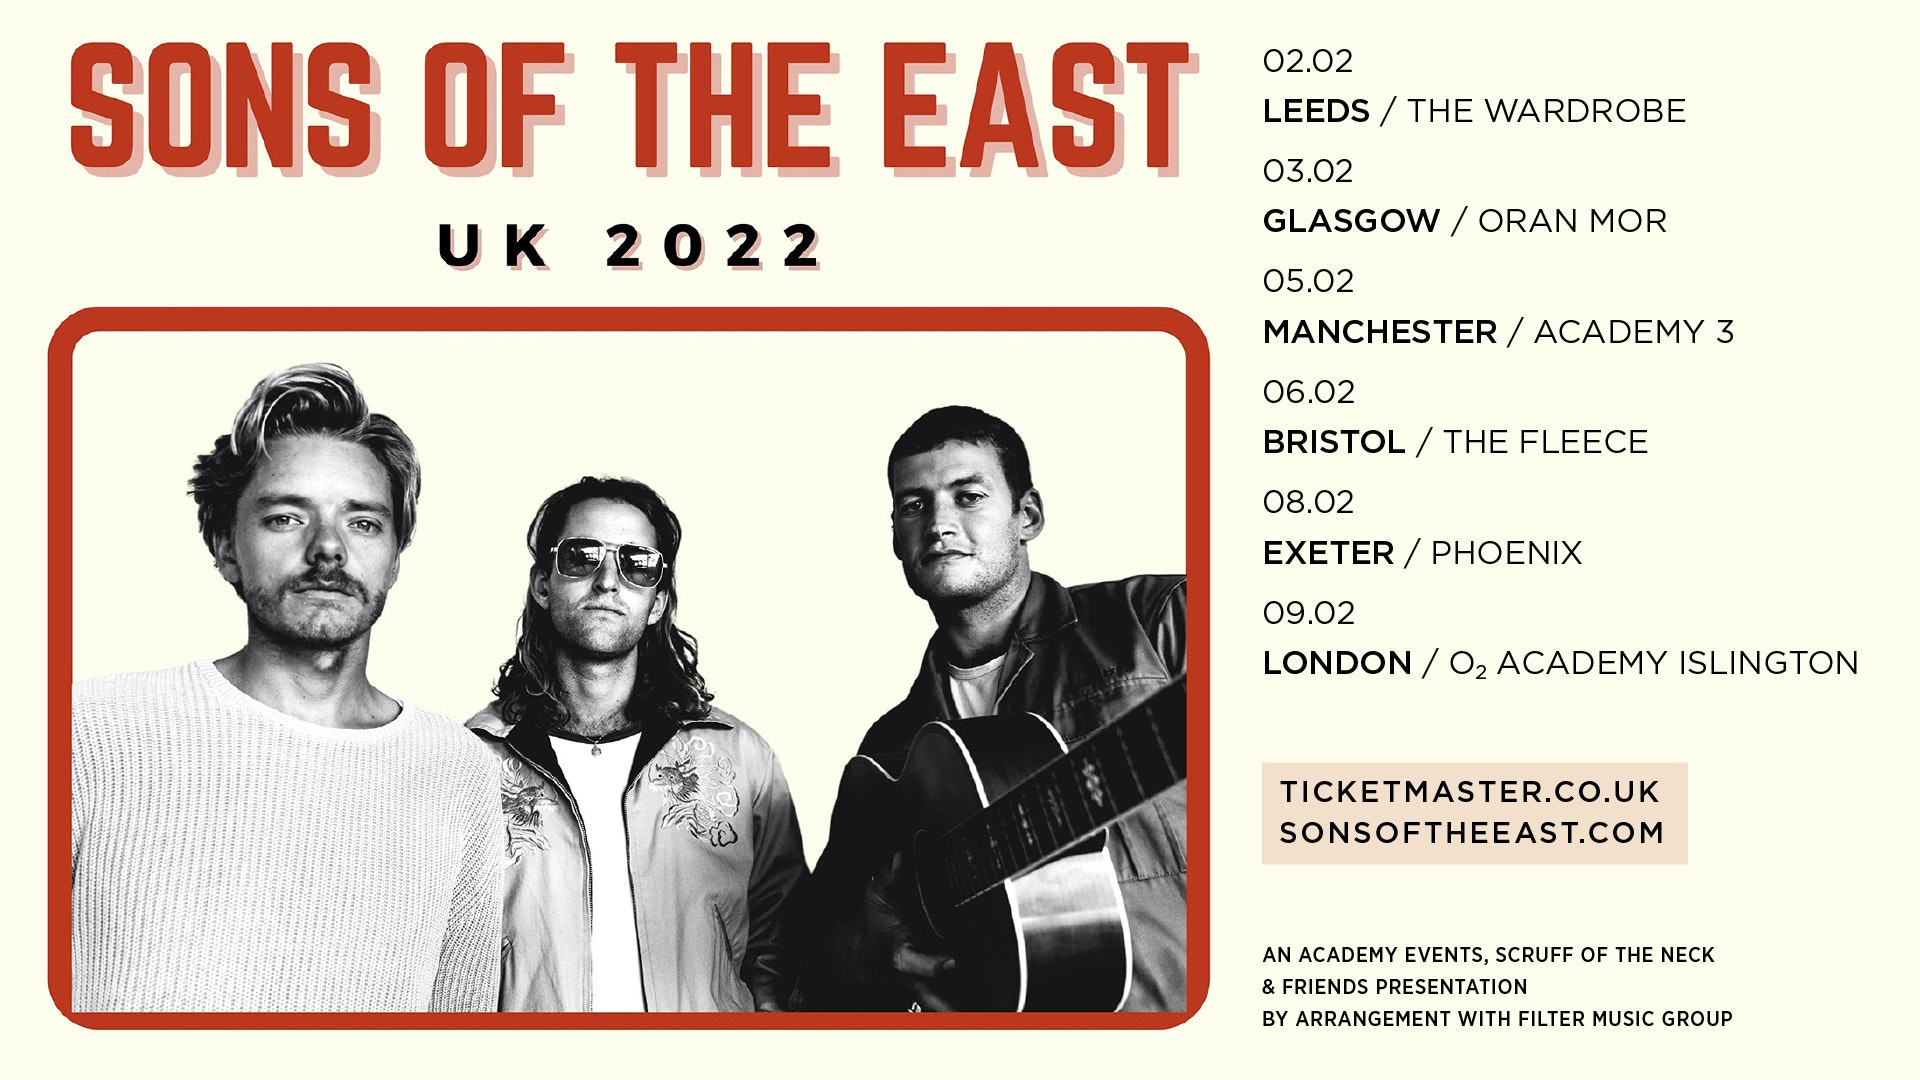 Sons Of The East | Leeds, The Wardrobe